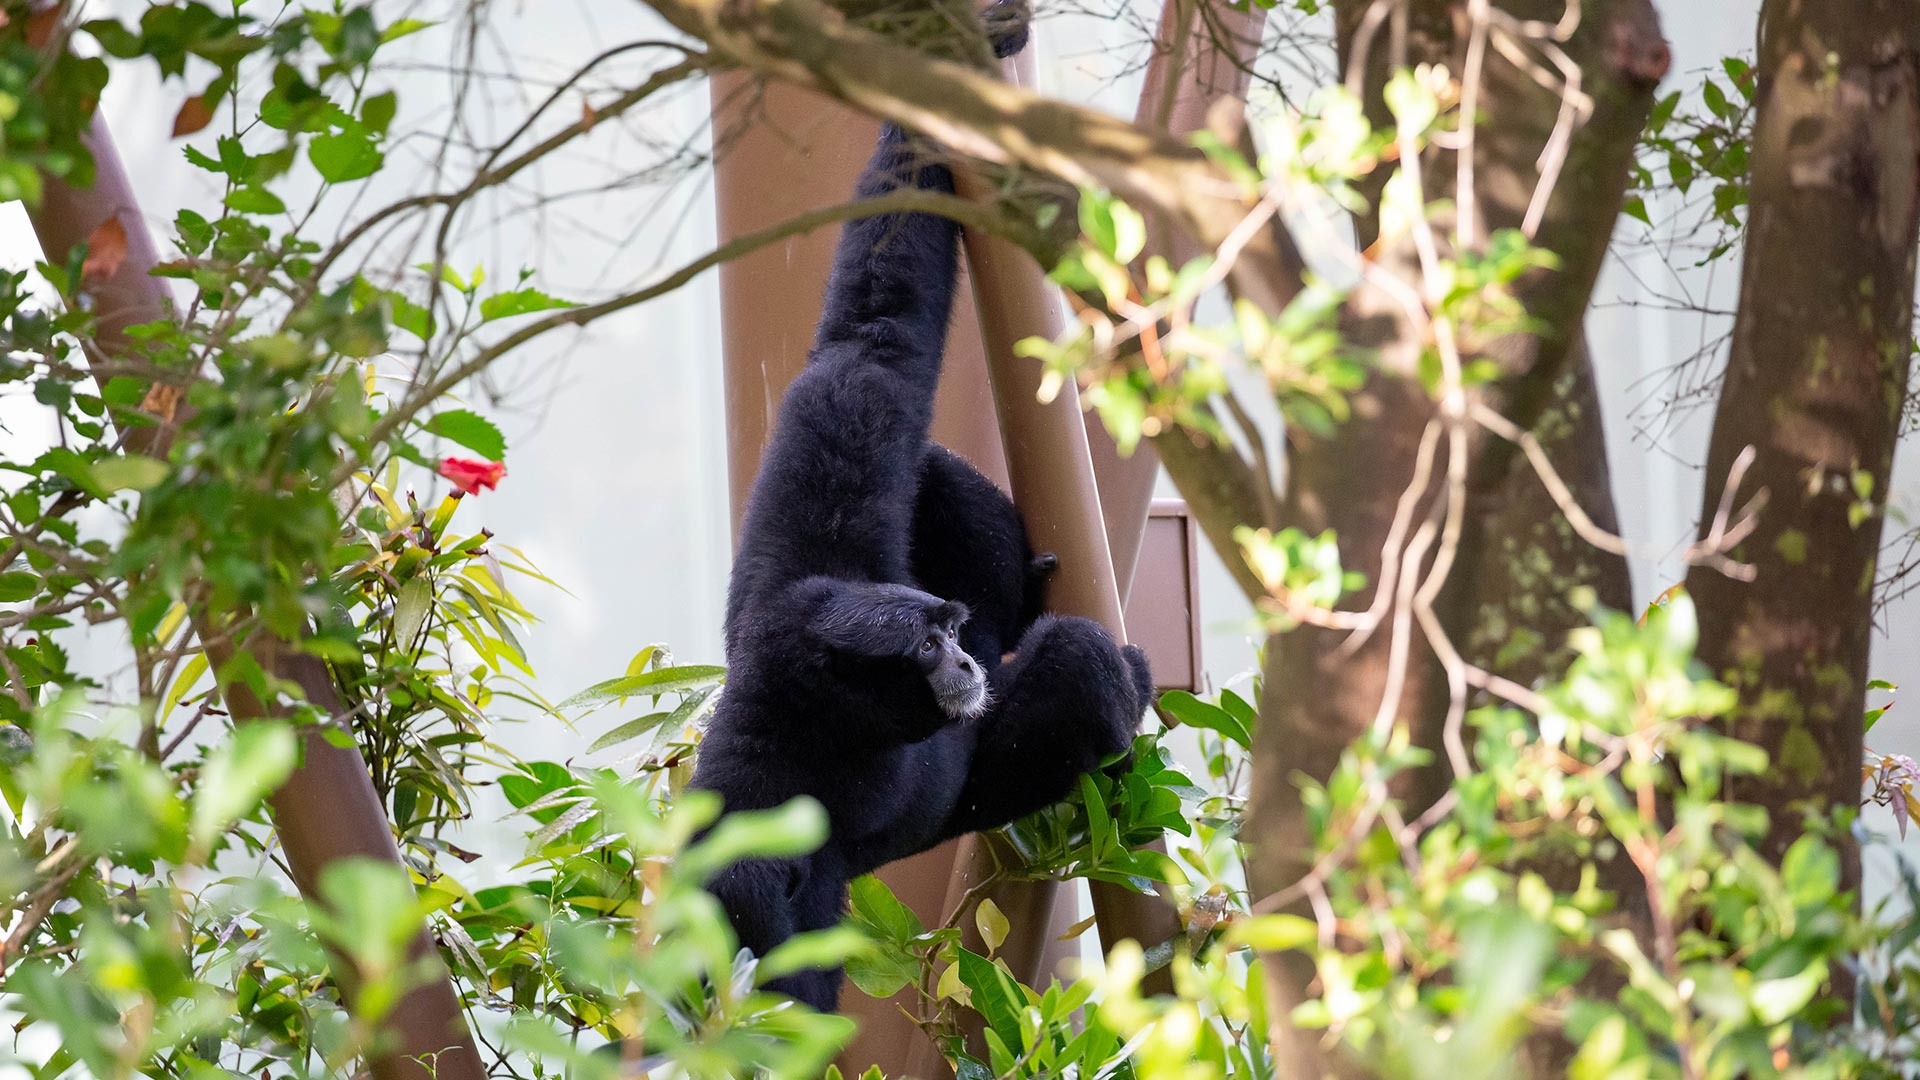 https://rfacdn.nz/zoo/assets/media/siamang-hanging-off-tree-structure-gallery.jpg